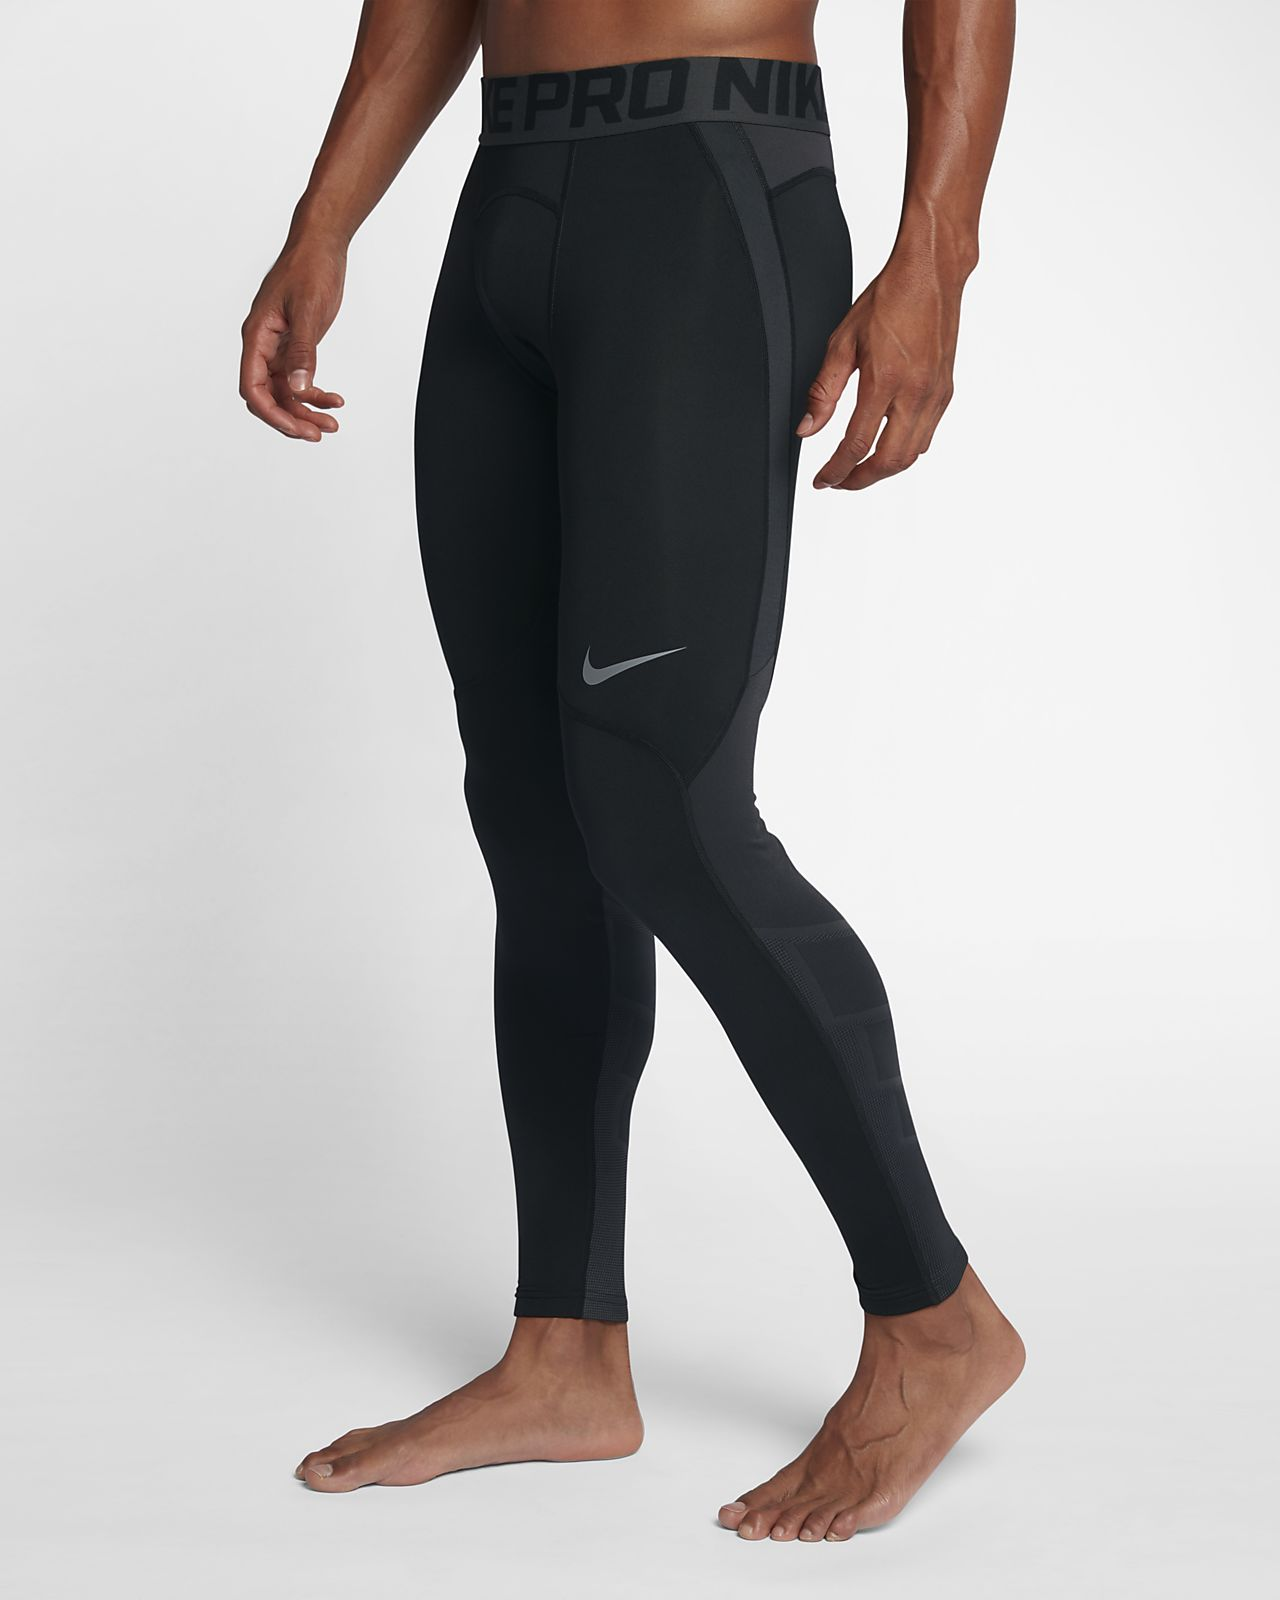 6893c3c53d031 Nike Pro HyperWarm Men's Tights. Nike.com IN